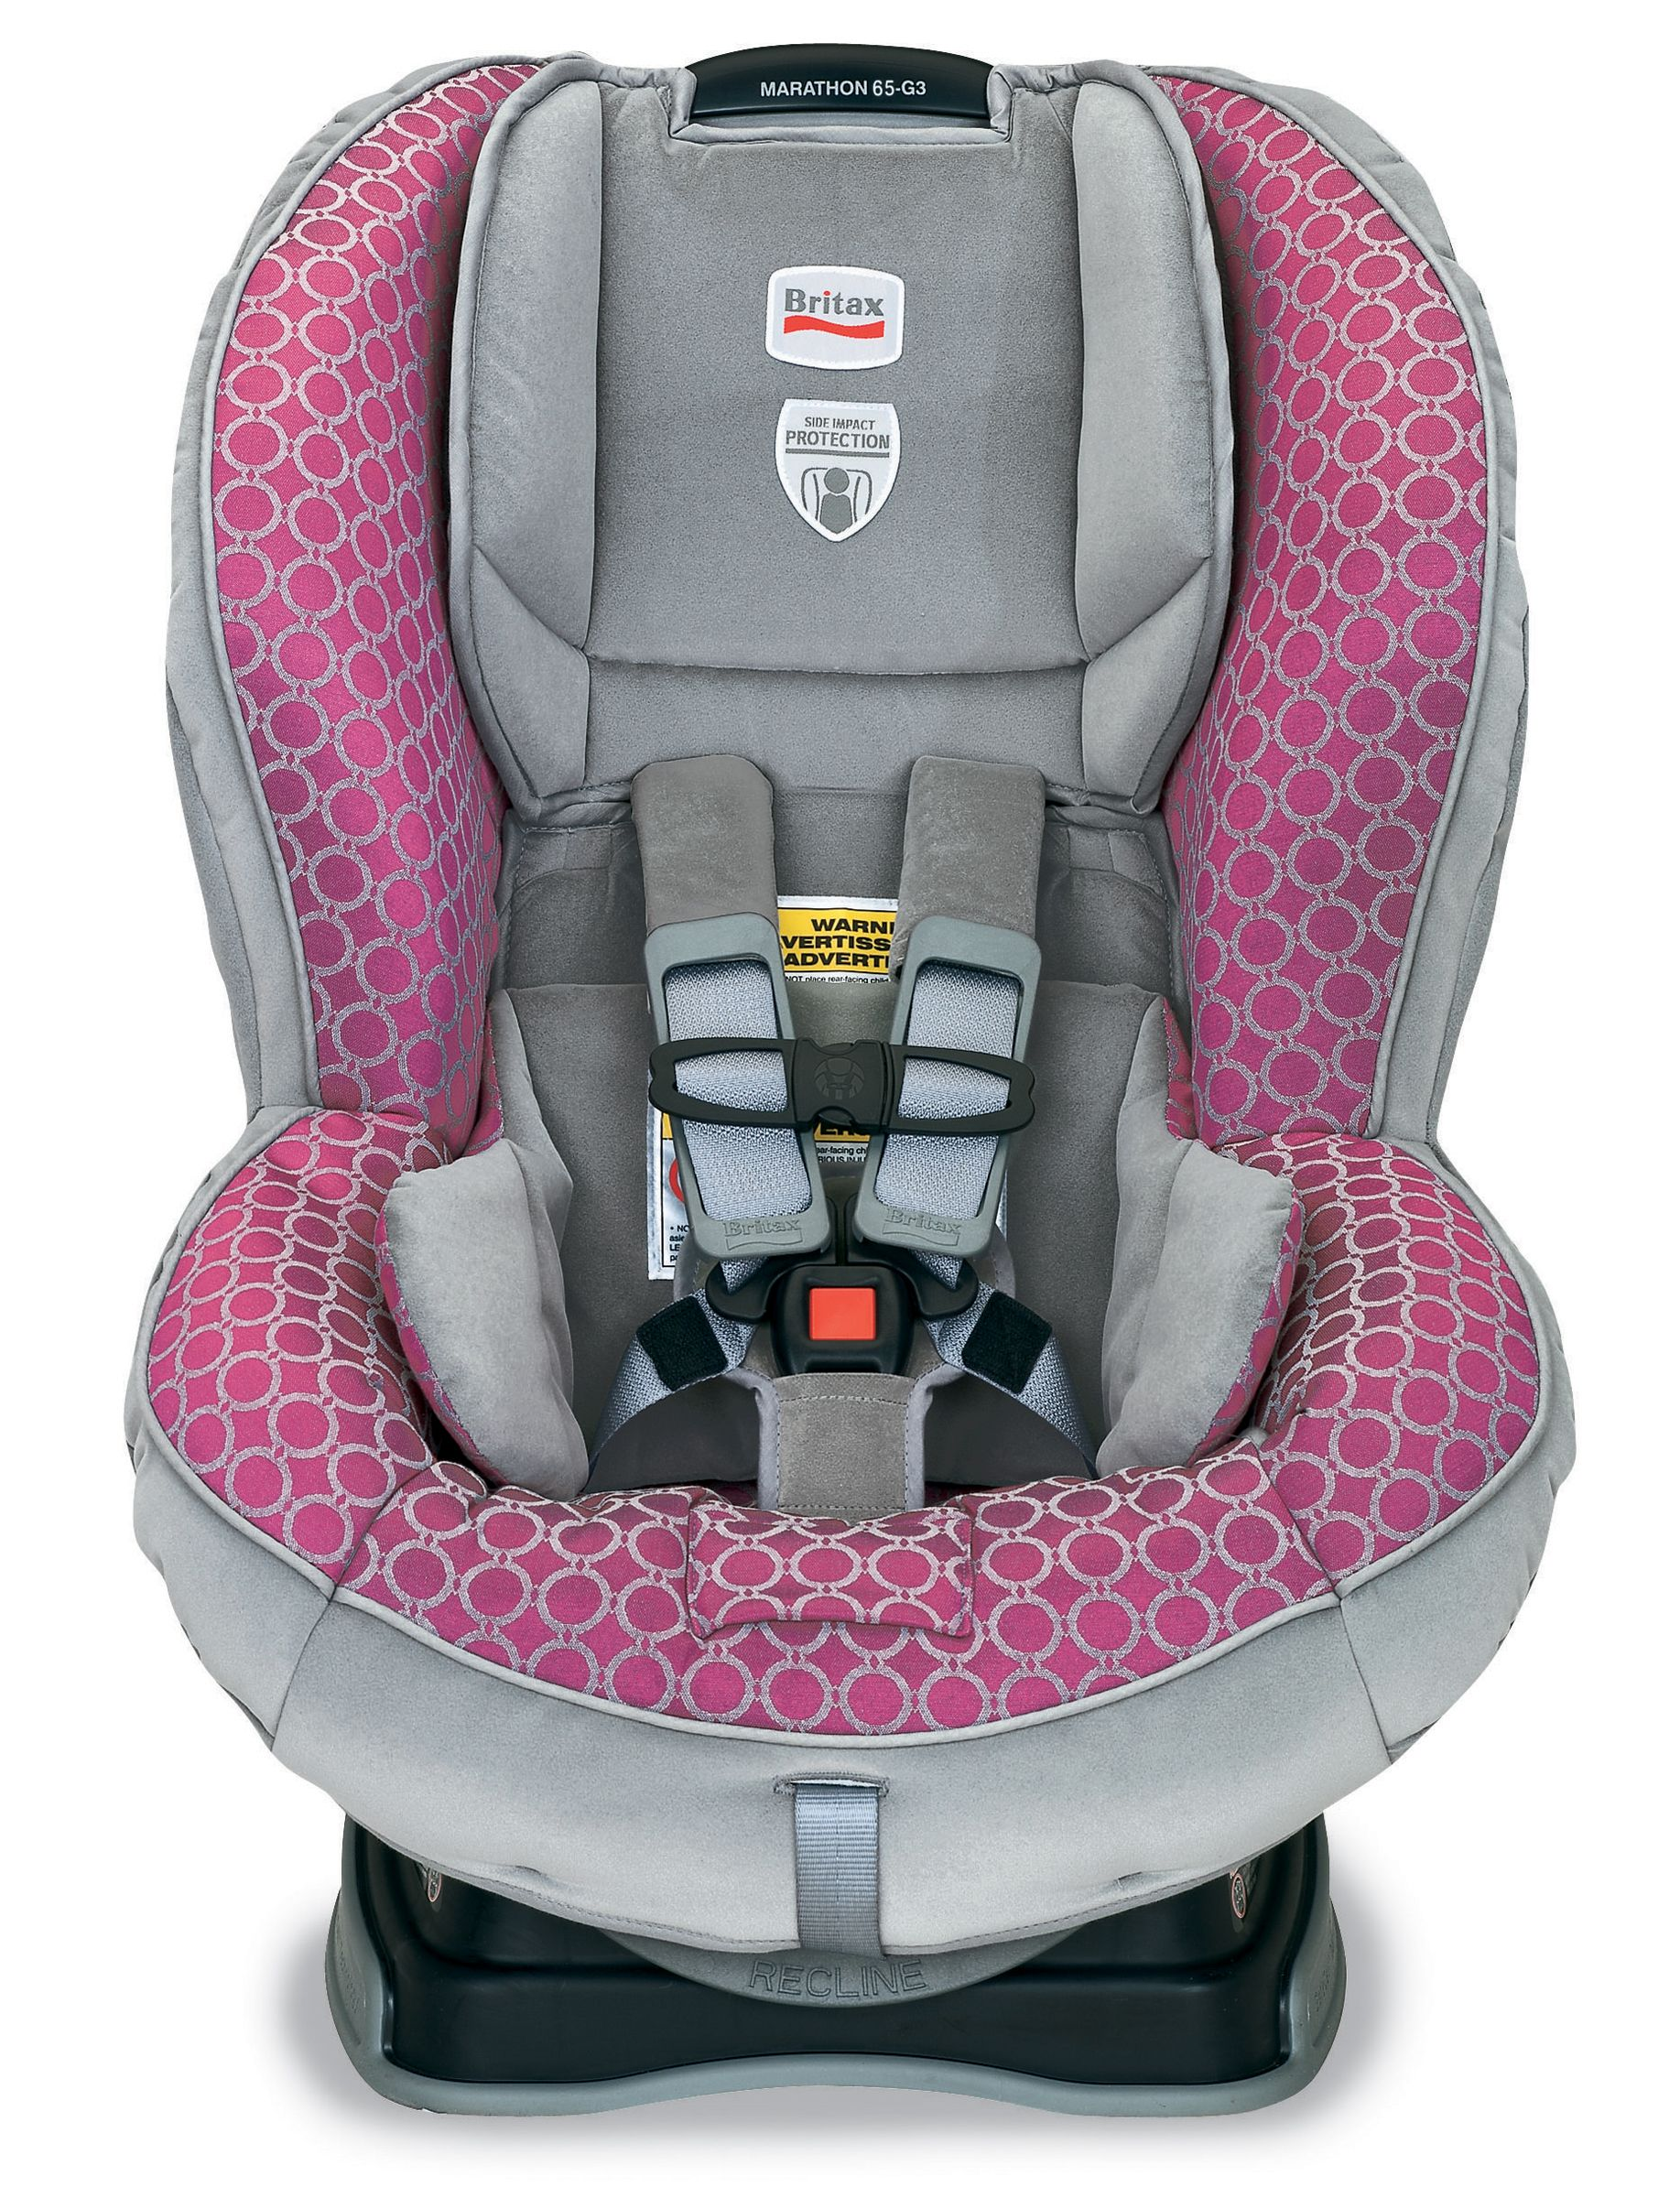 Britax Marathon 65 Azalea Baby car seats, Best toddler